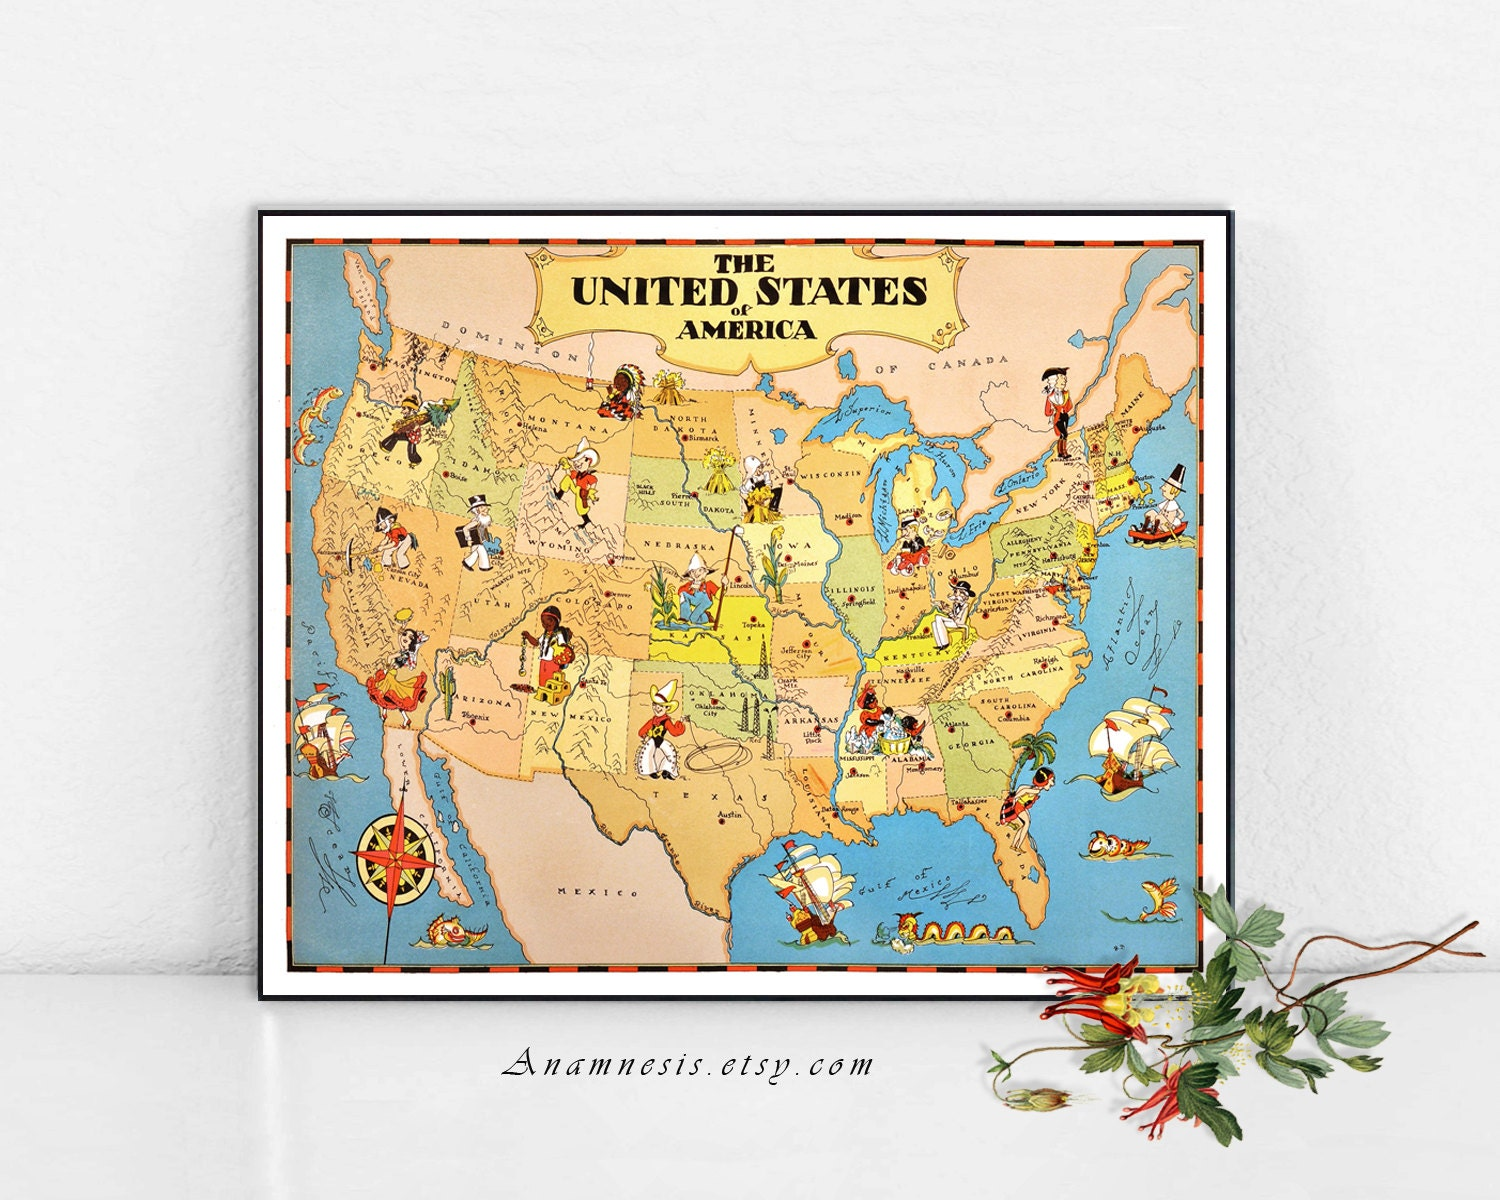 United States Map Picture Frame.United States Map Print Digital Download Vintage By Anamnesis